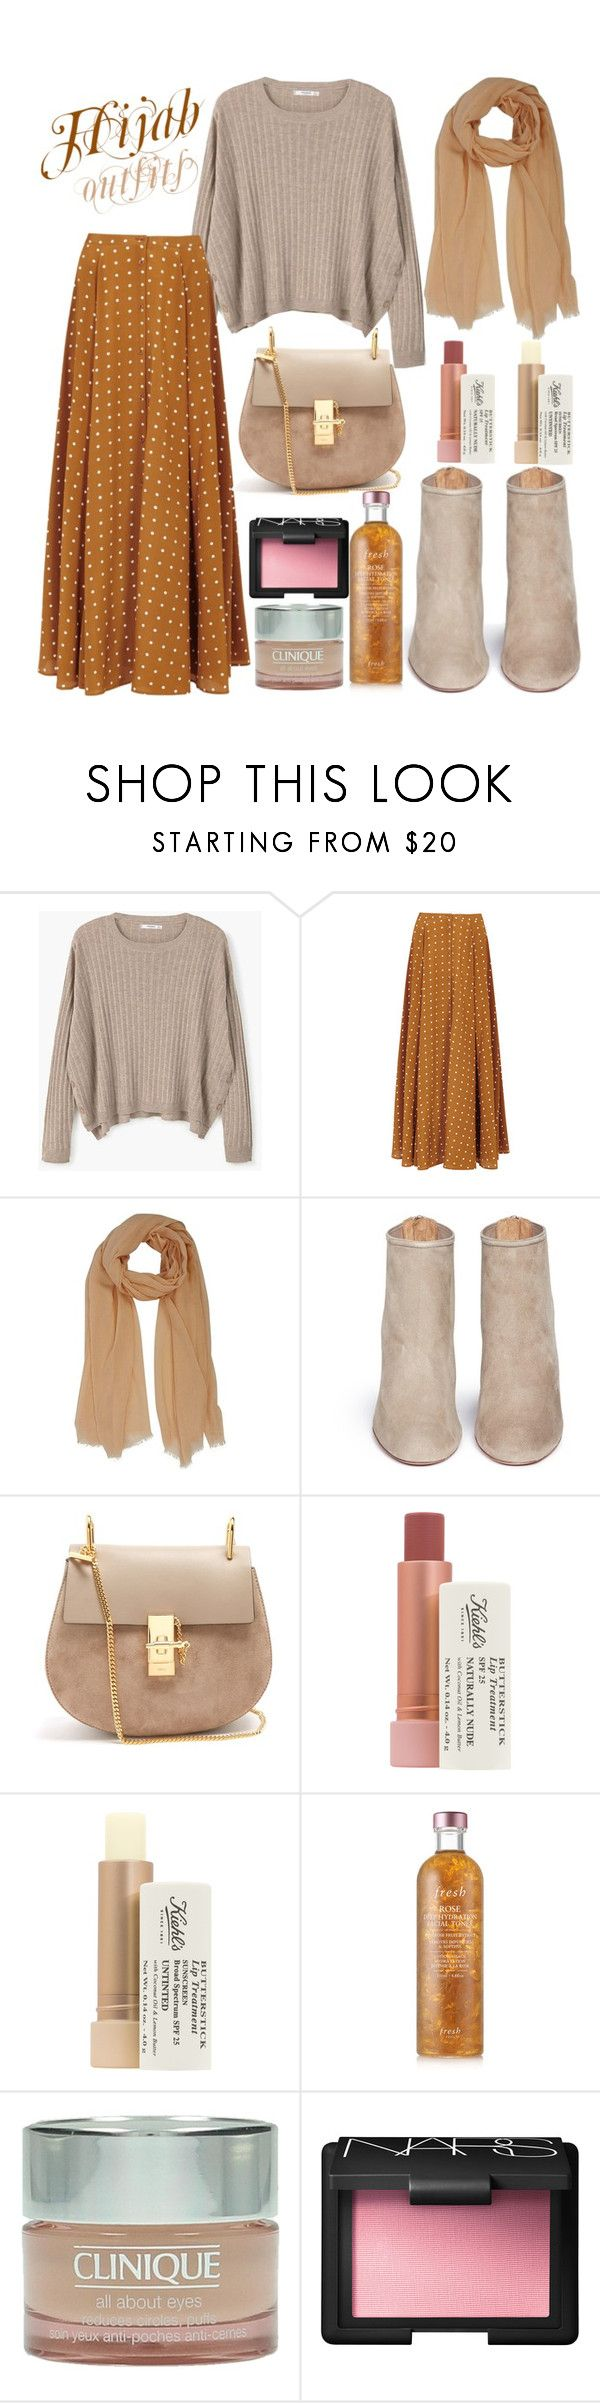 """#Hijab_outfits #Beige"" by mennah-ibrahim ❤ liked on Polyvore featuring MANGO, Diane Von Furstenberg, Aquazzura, Chloé, Kiehl's, Fresh, Clinique and NARS Cosmetics"